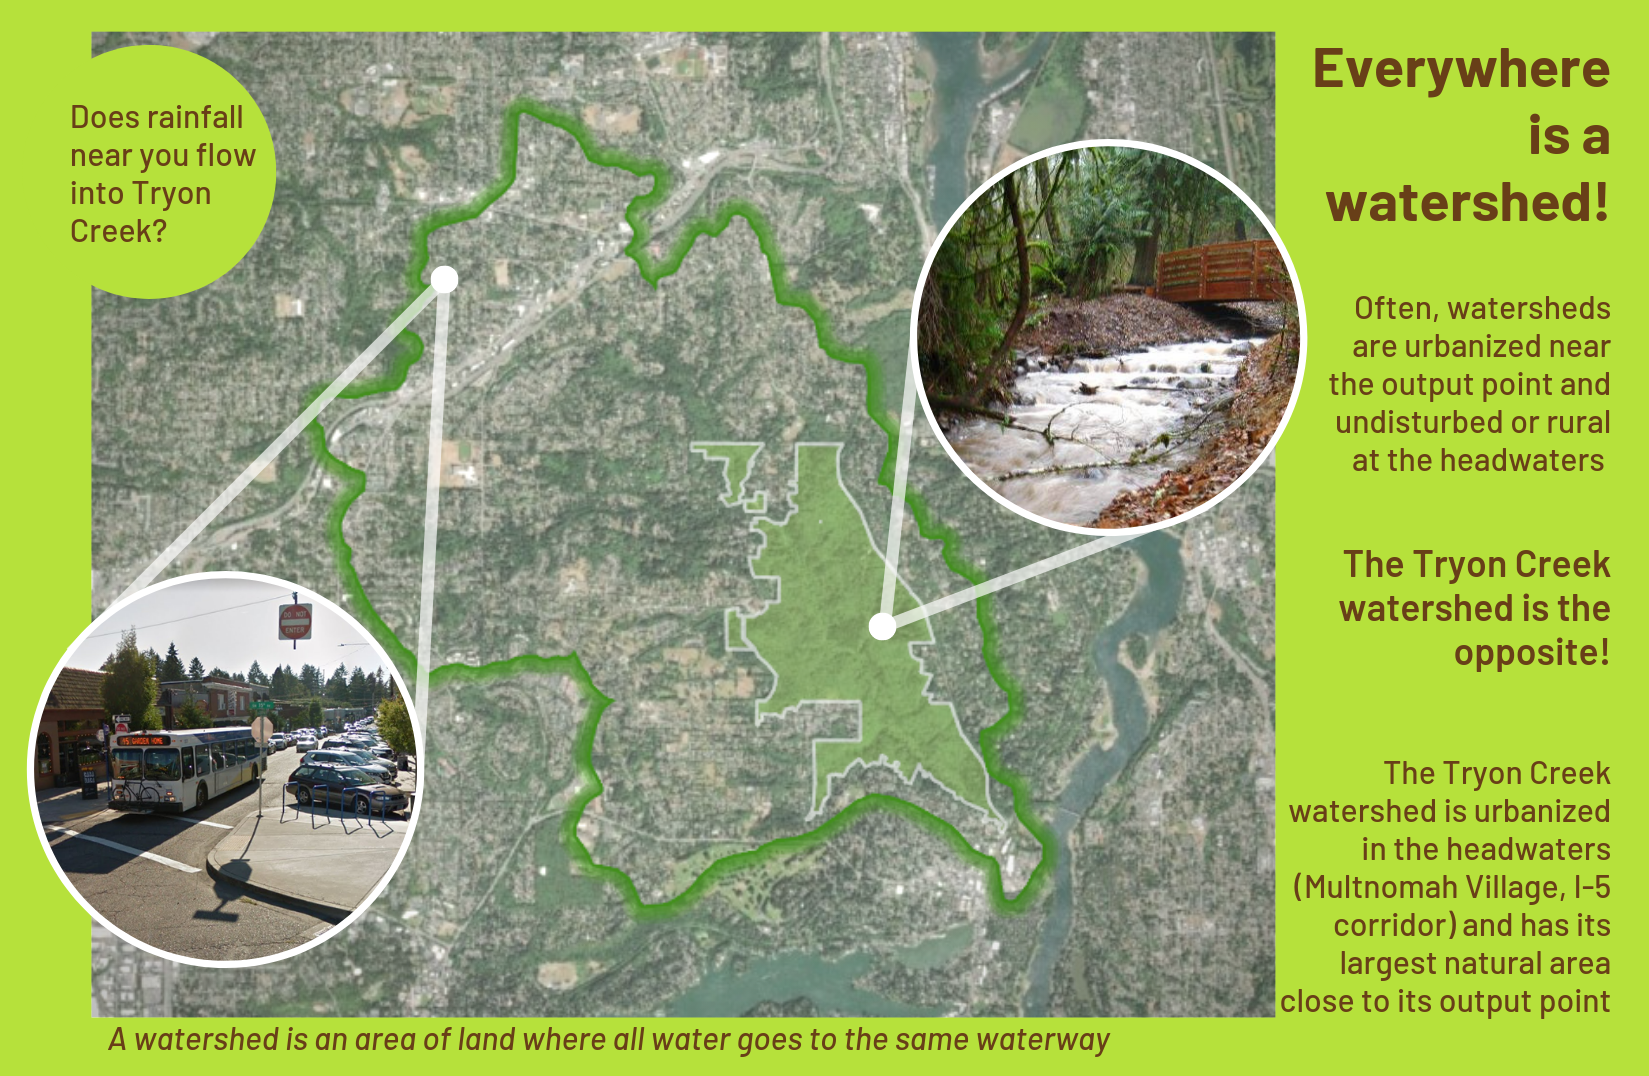 Everywhere is a watershed graphic highlighting a street and a creek.